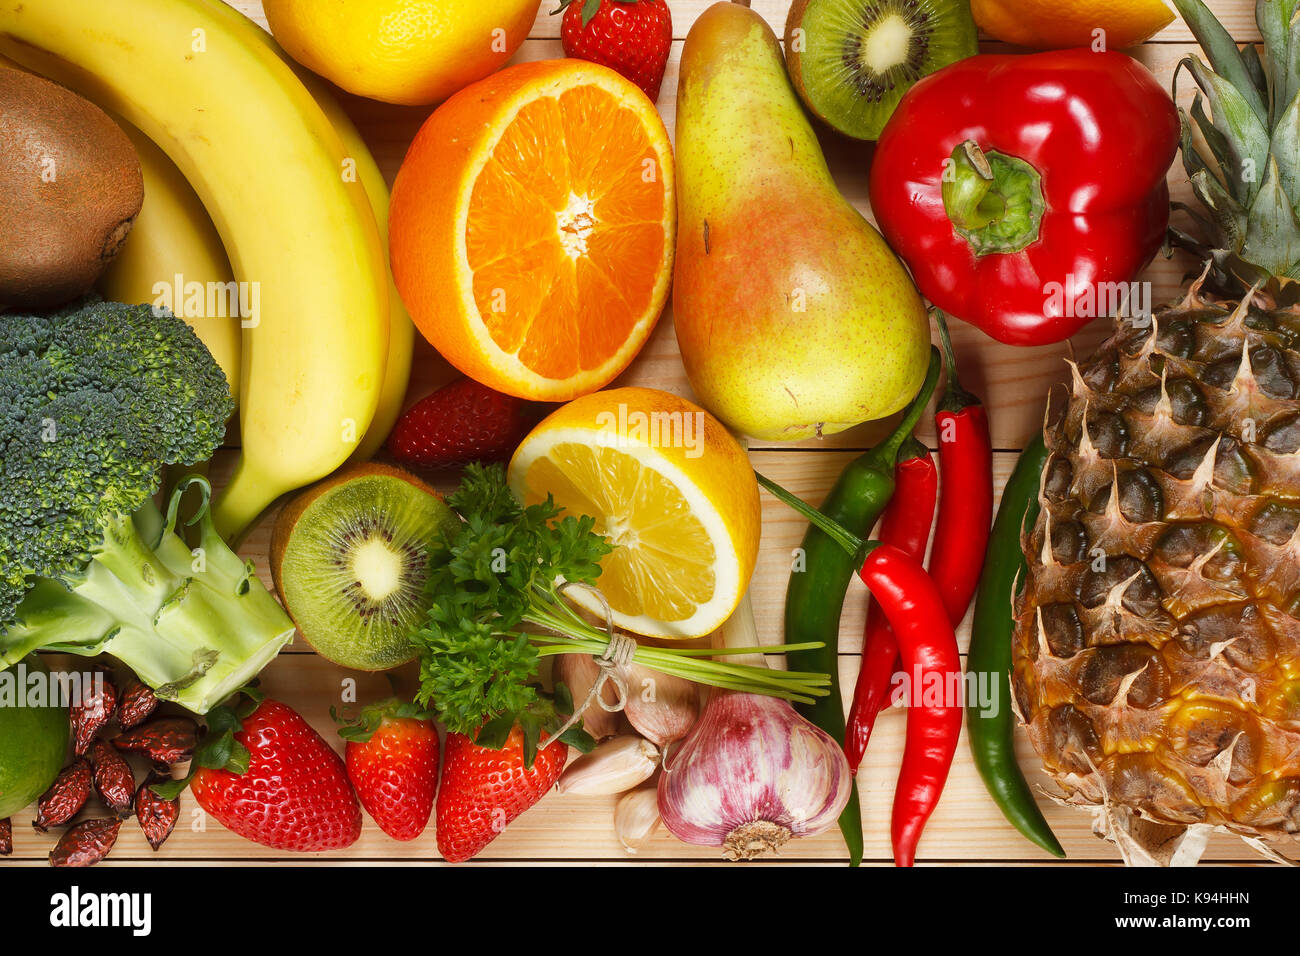 Vitamin C in fruits and vegetables. Natural products rich in vitamin C as oranges, lemons, dried fruits rose, red - Stock Image